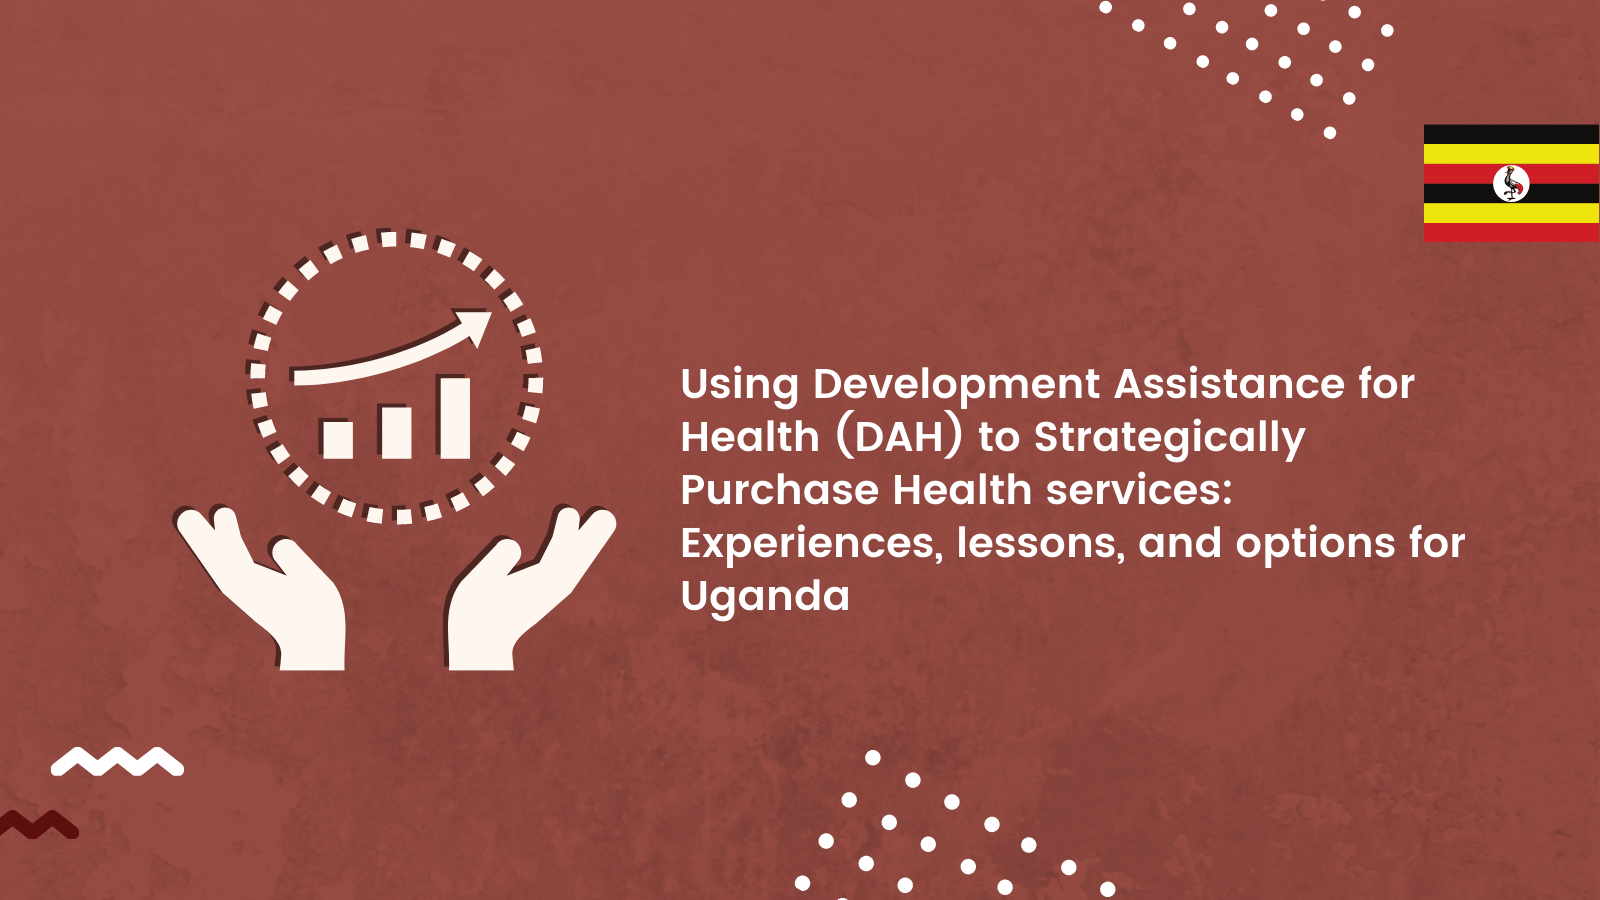 Using Development Assistance for Health (DAH) to Strategically Purchase Health services: Experiences, Lessons, and Options for Uganda